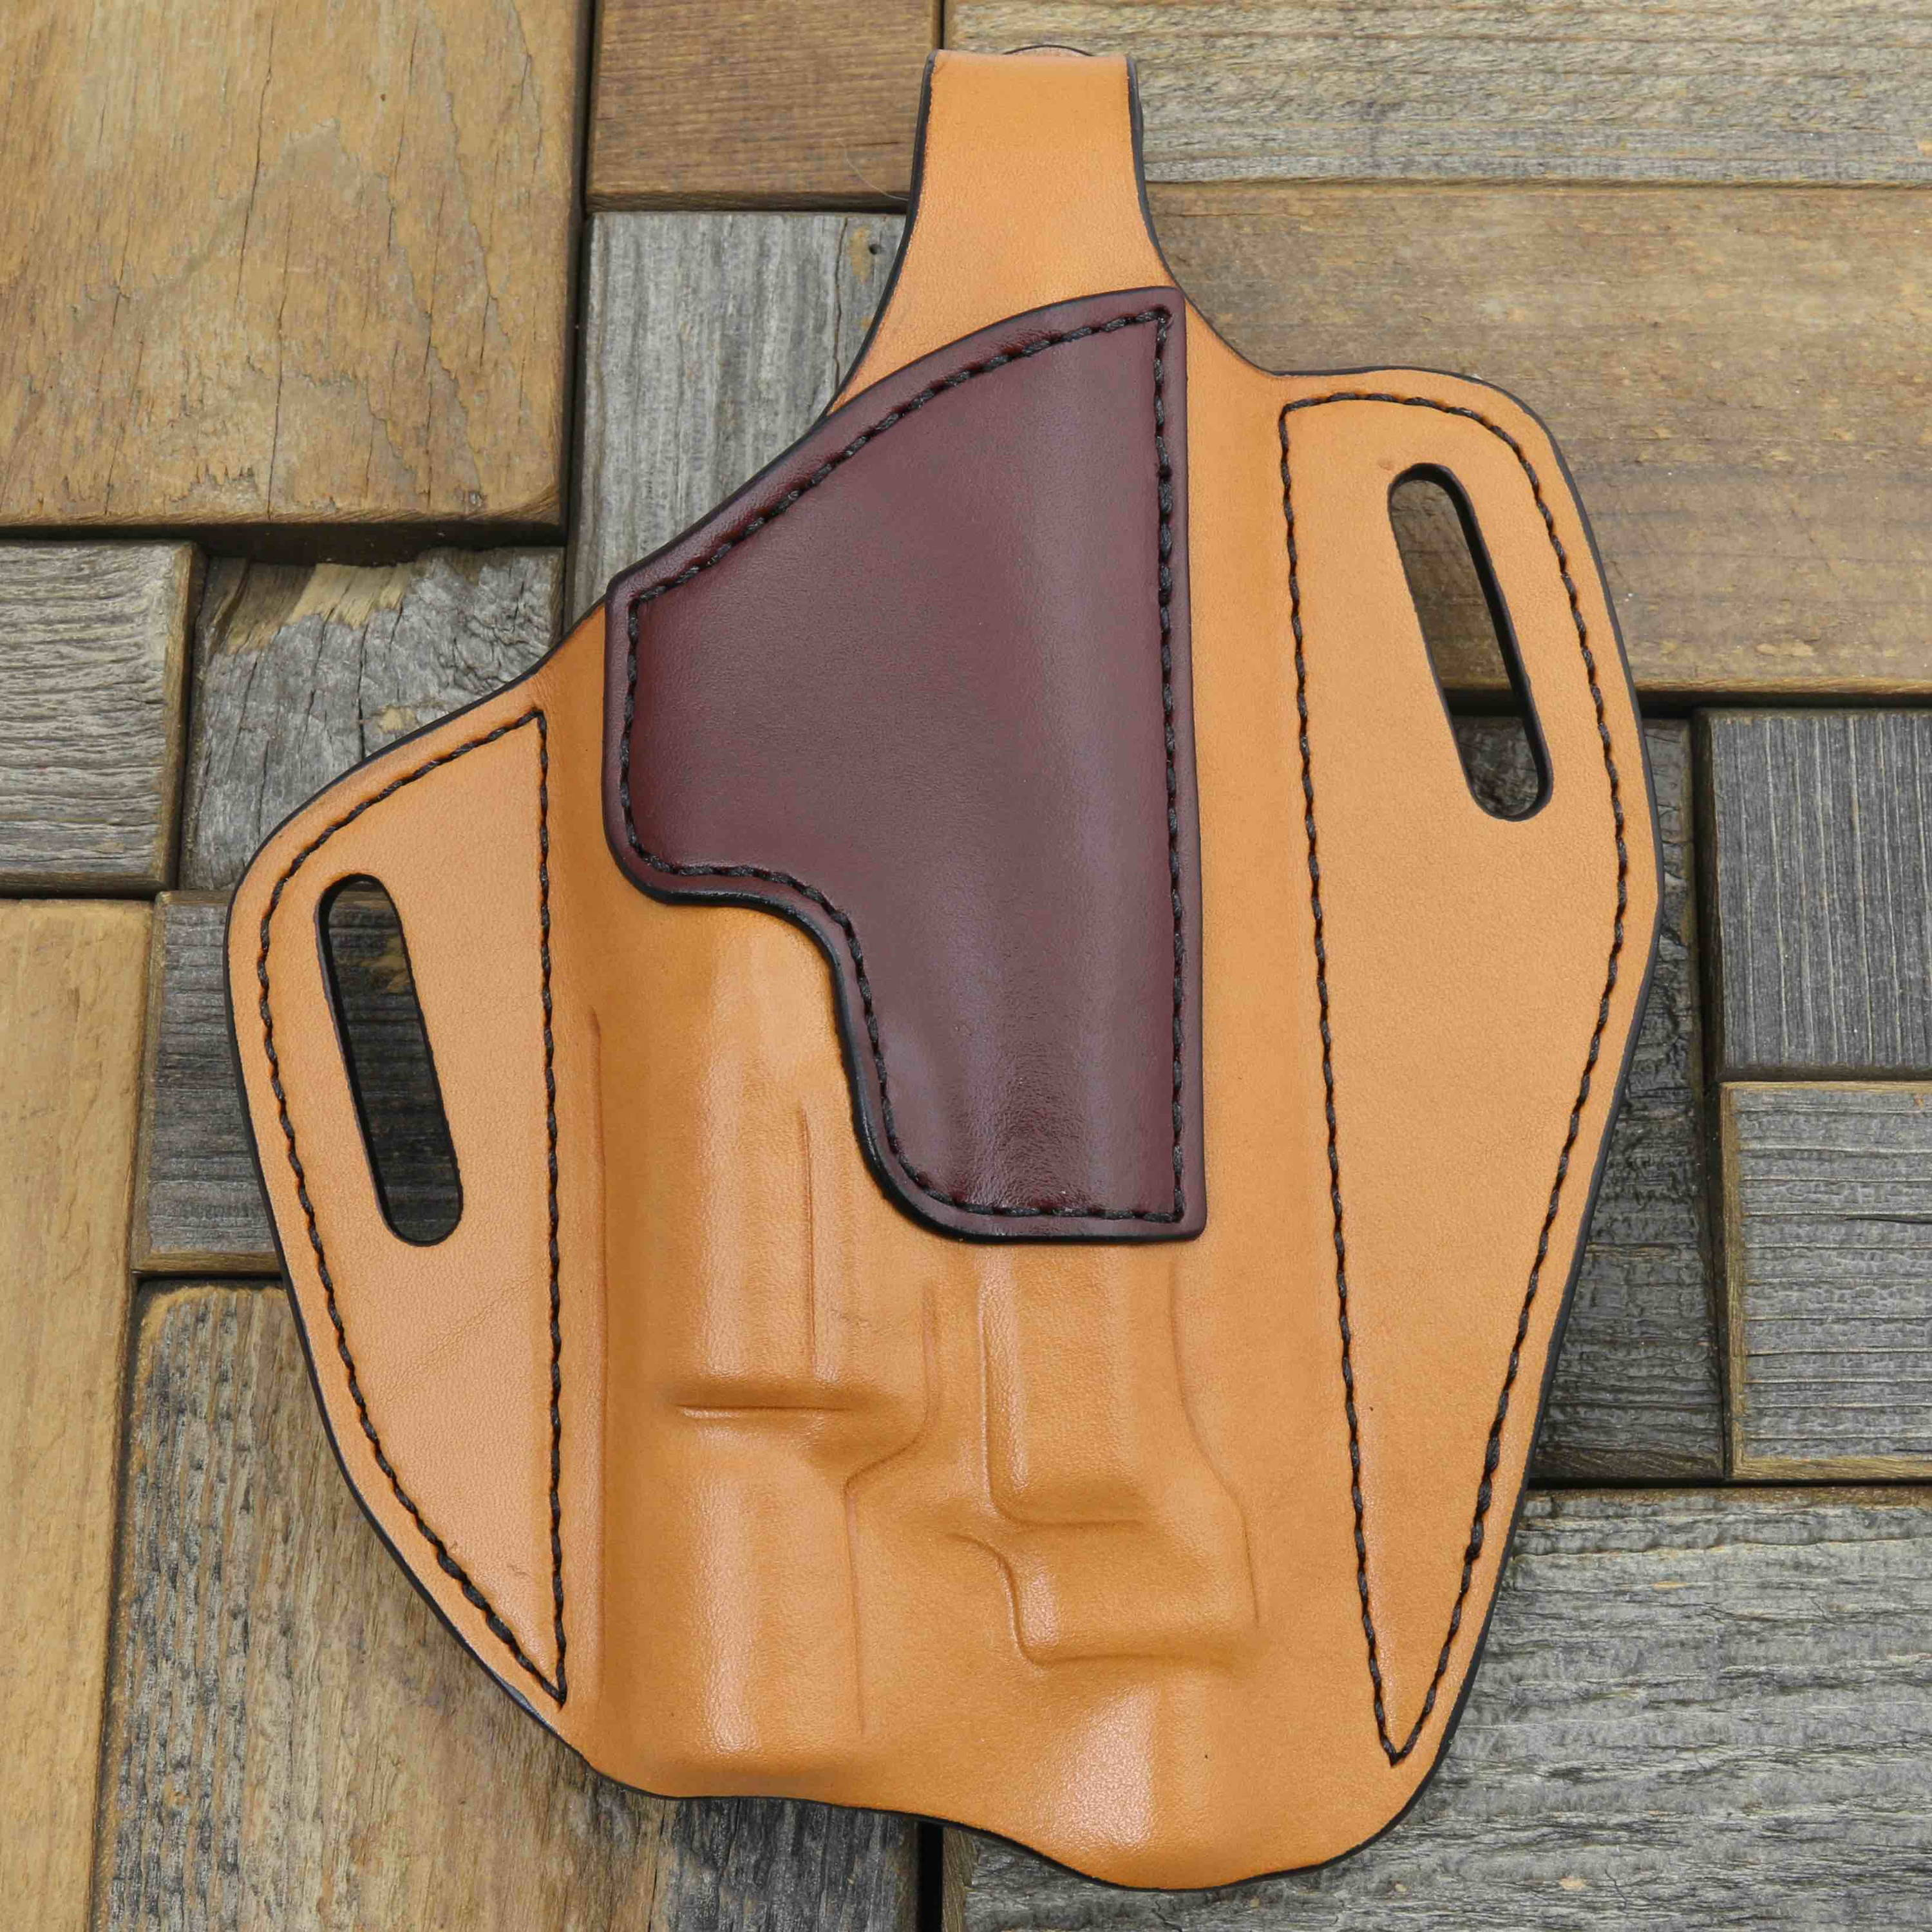 Custom holster with laser